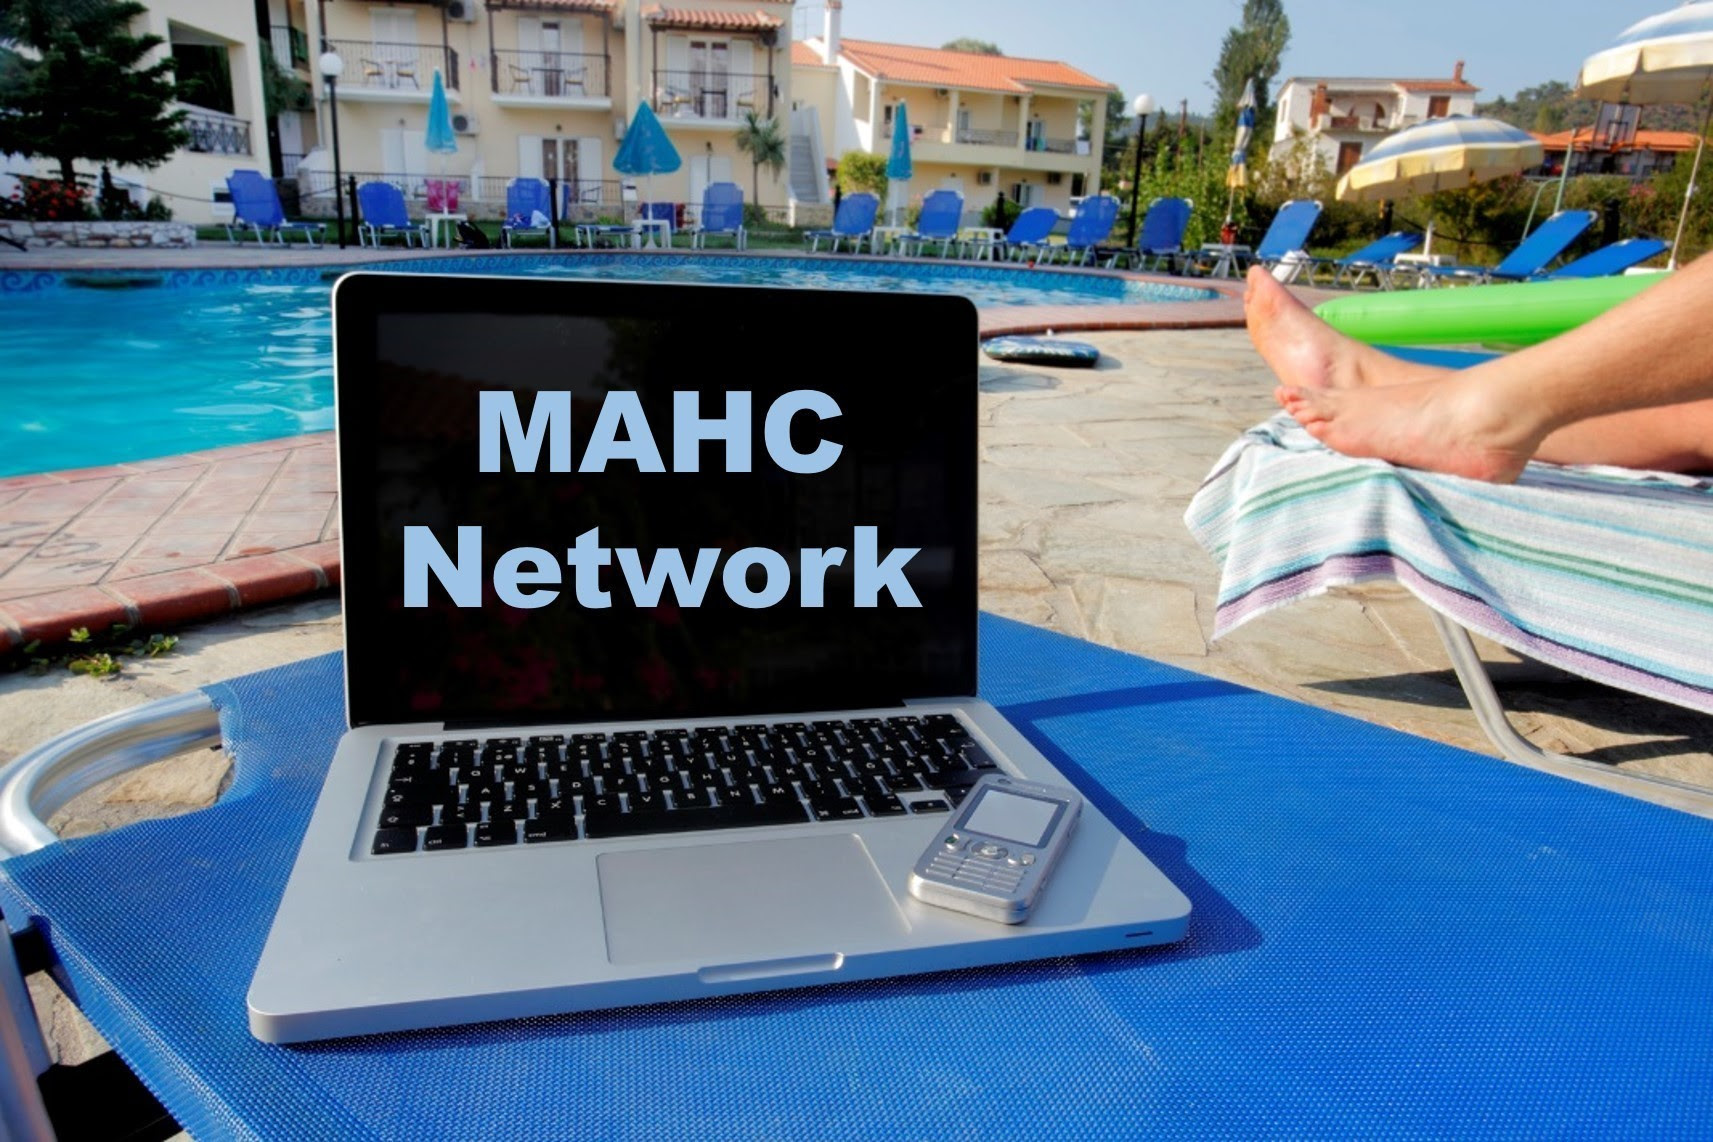 MAHC network laptop near pool